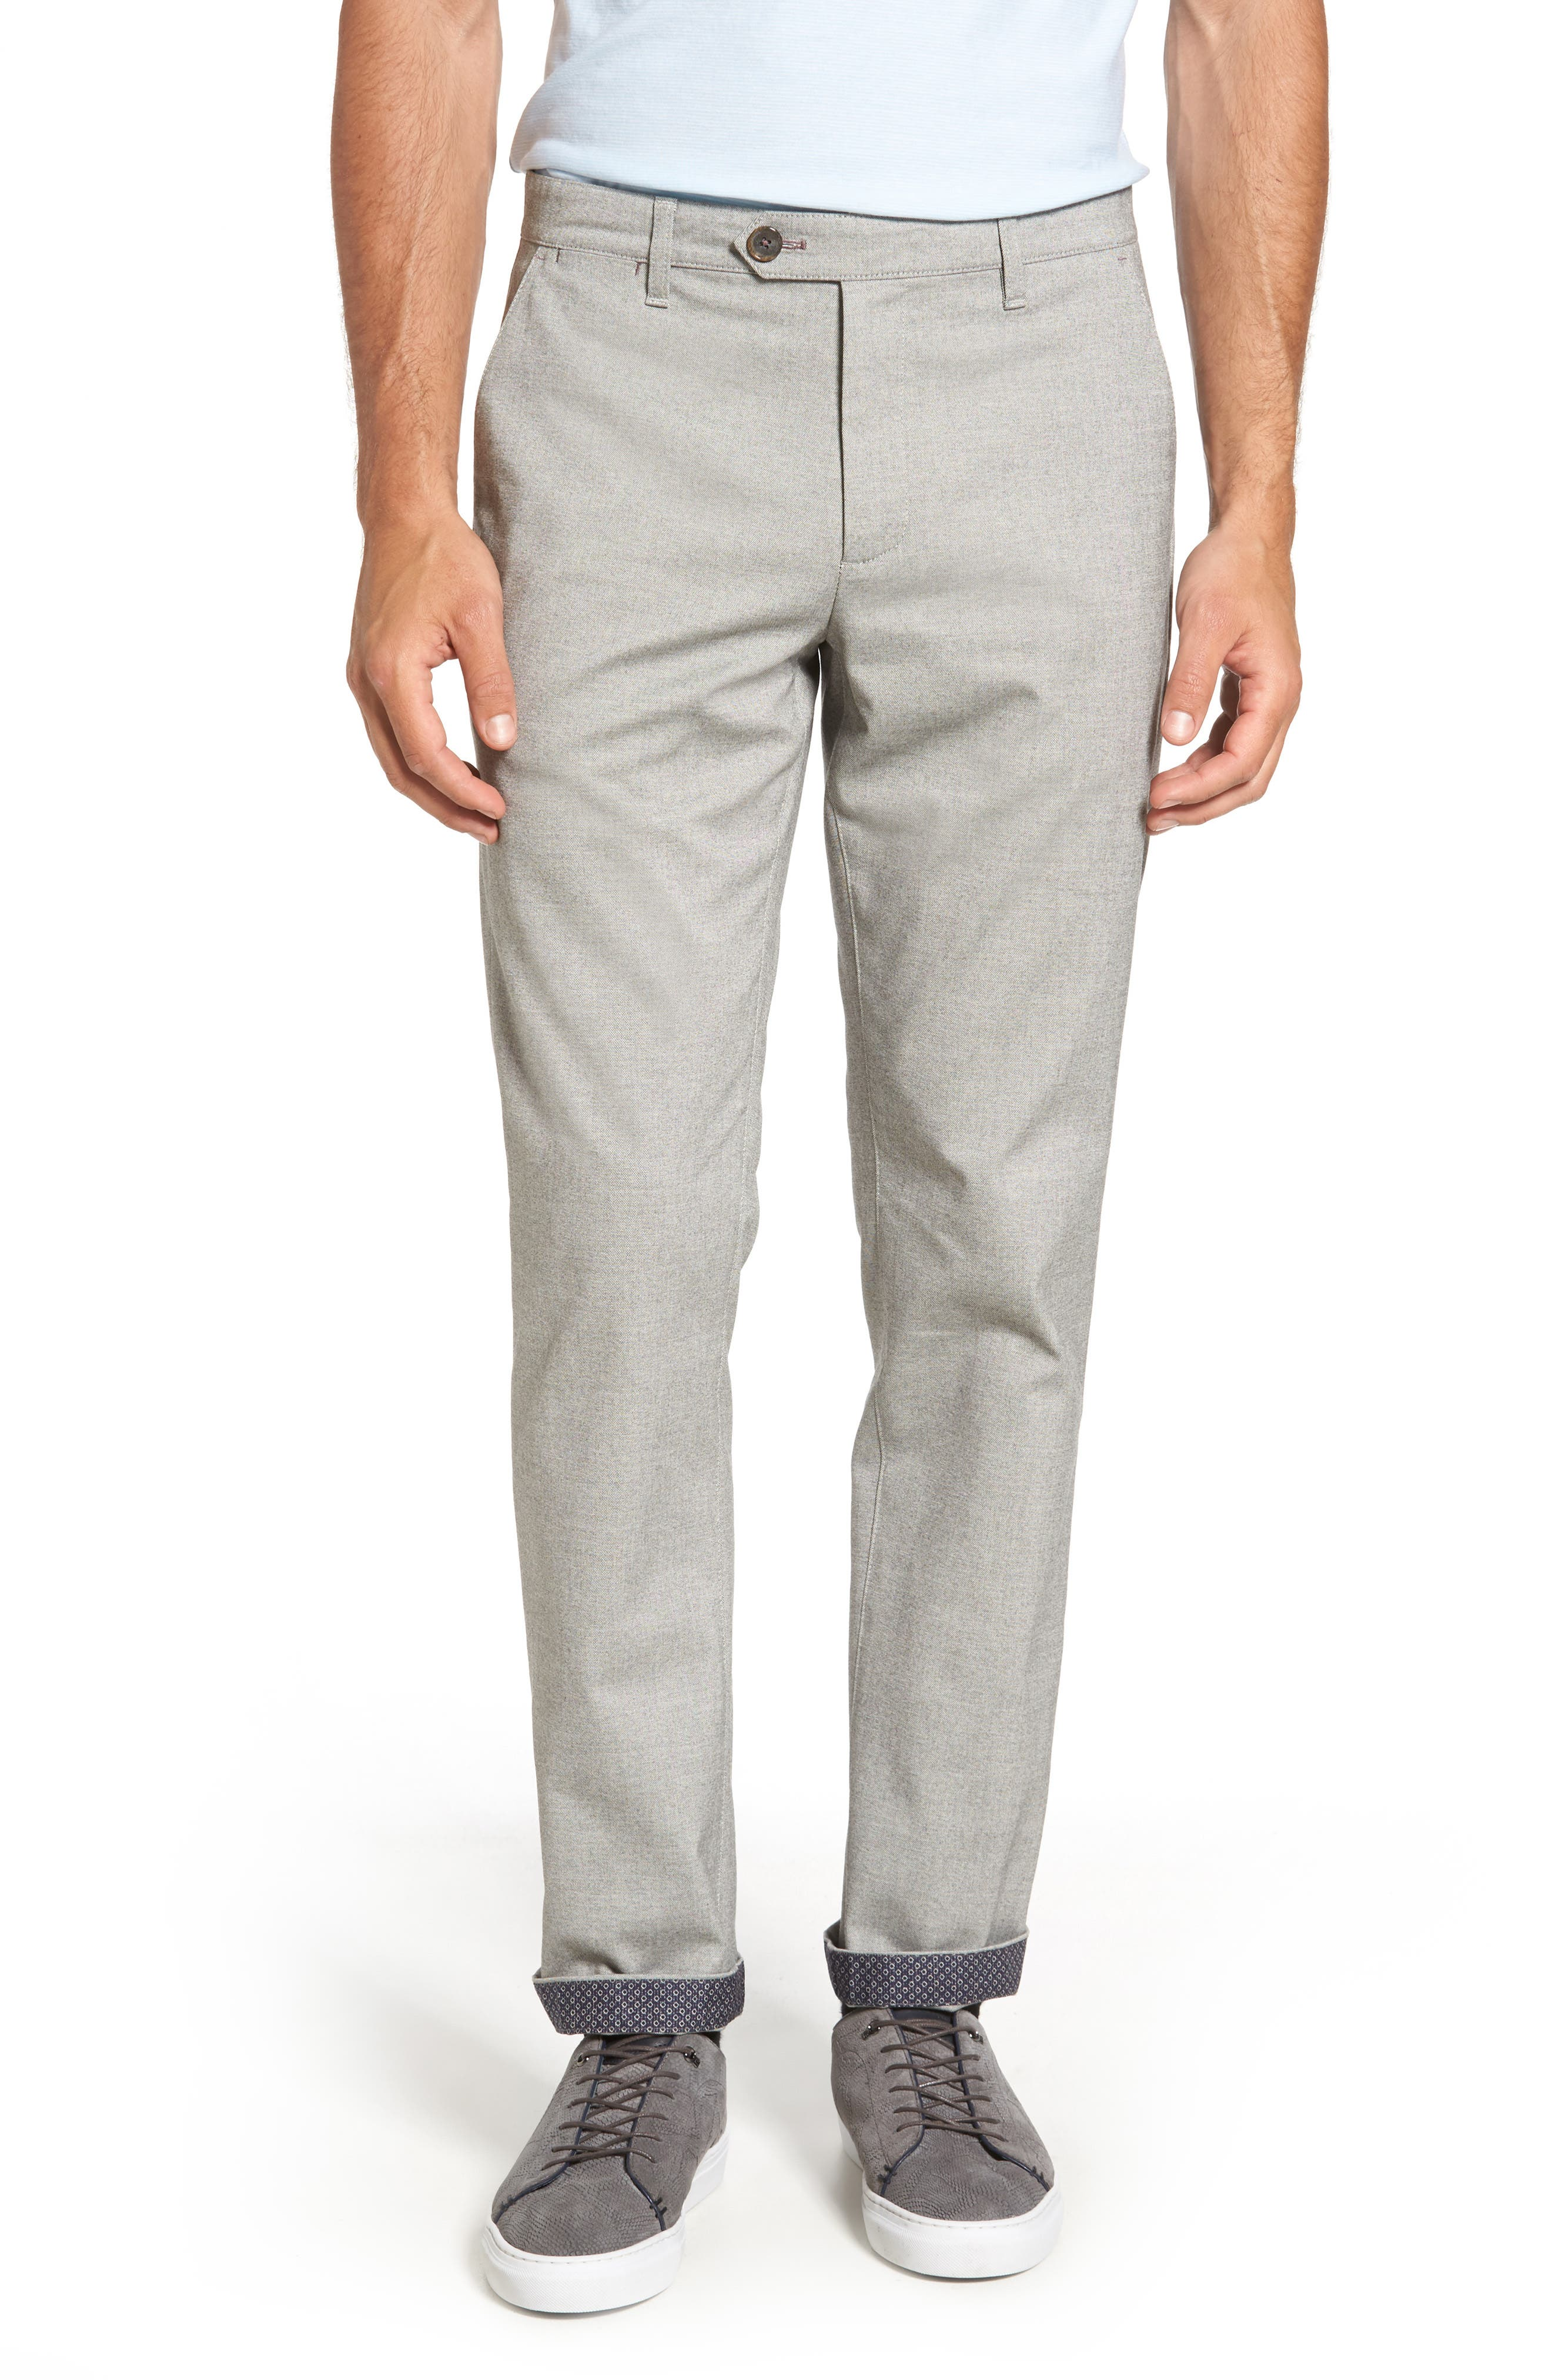 TED BAKER LONDON Volvek Classic Fit Trousers, Main, color, 030